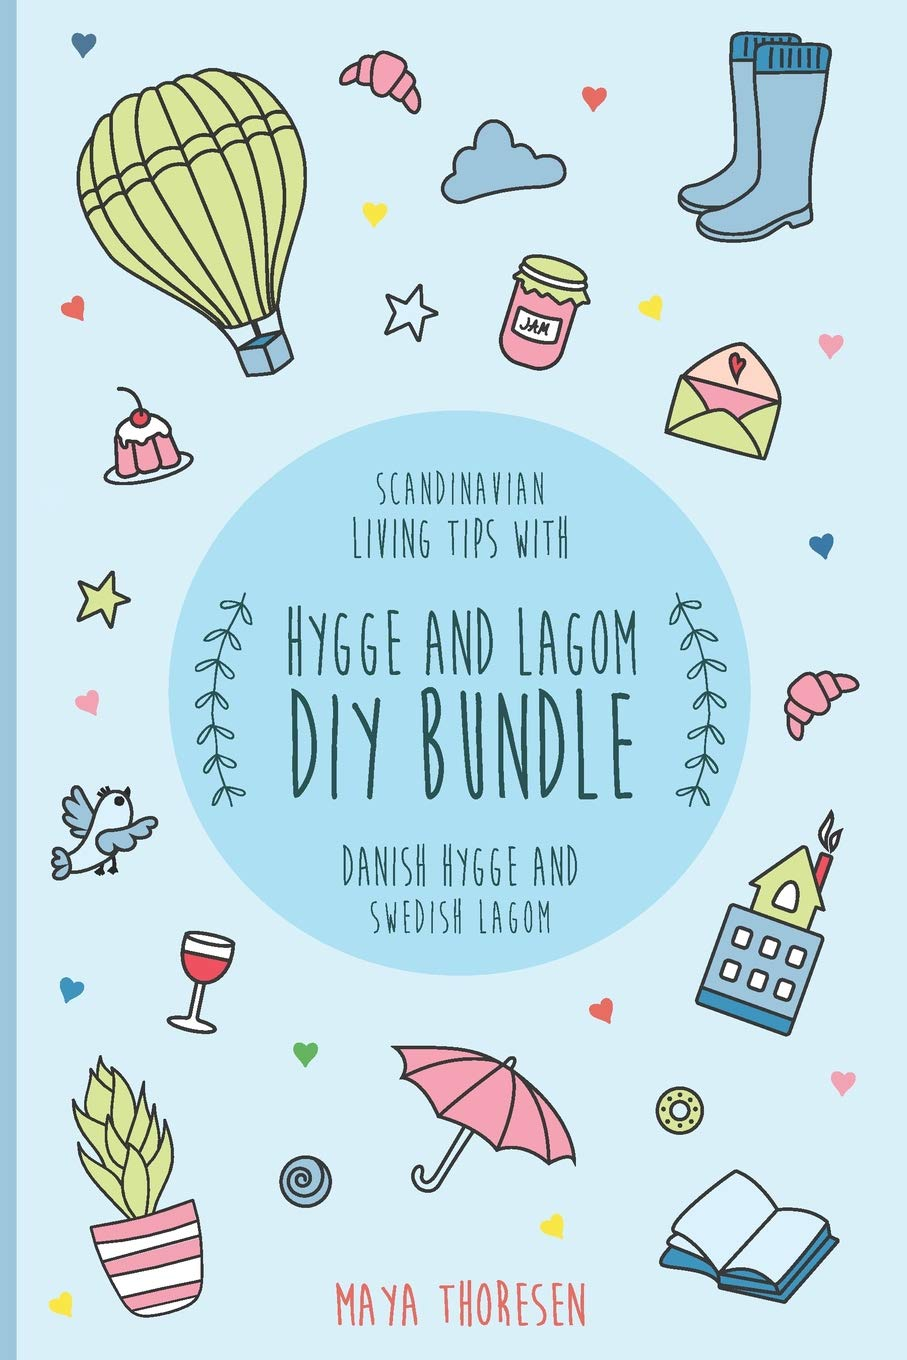 Hygge and Lagom DIY Bundle: Scandinavian living tips with Danish Hygge and Swedish Lagom: Amazon.es: Maya Thoresen: Libros en idiomas extranjeros